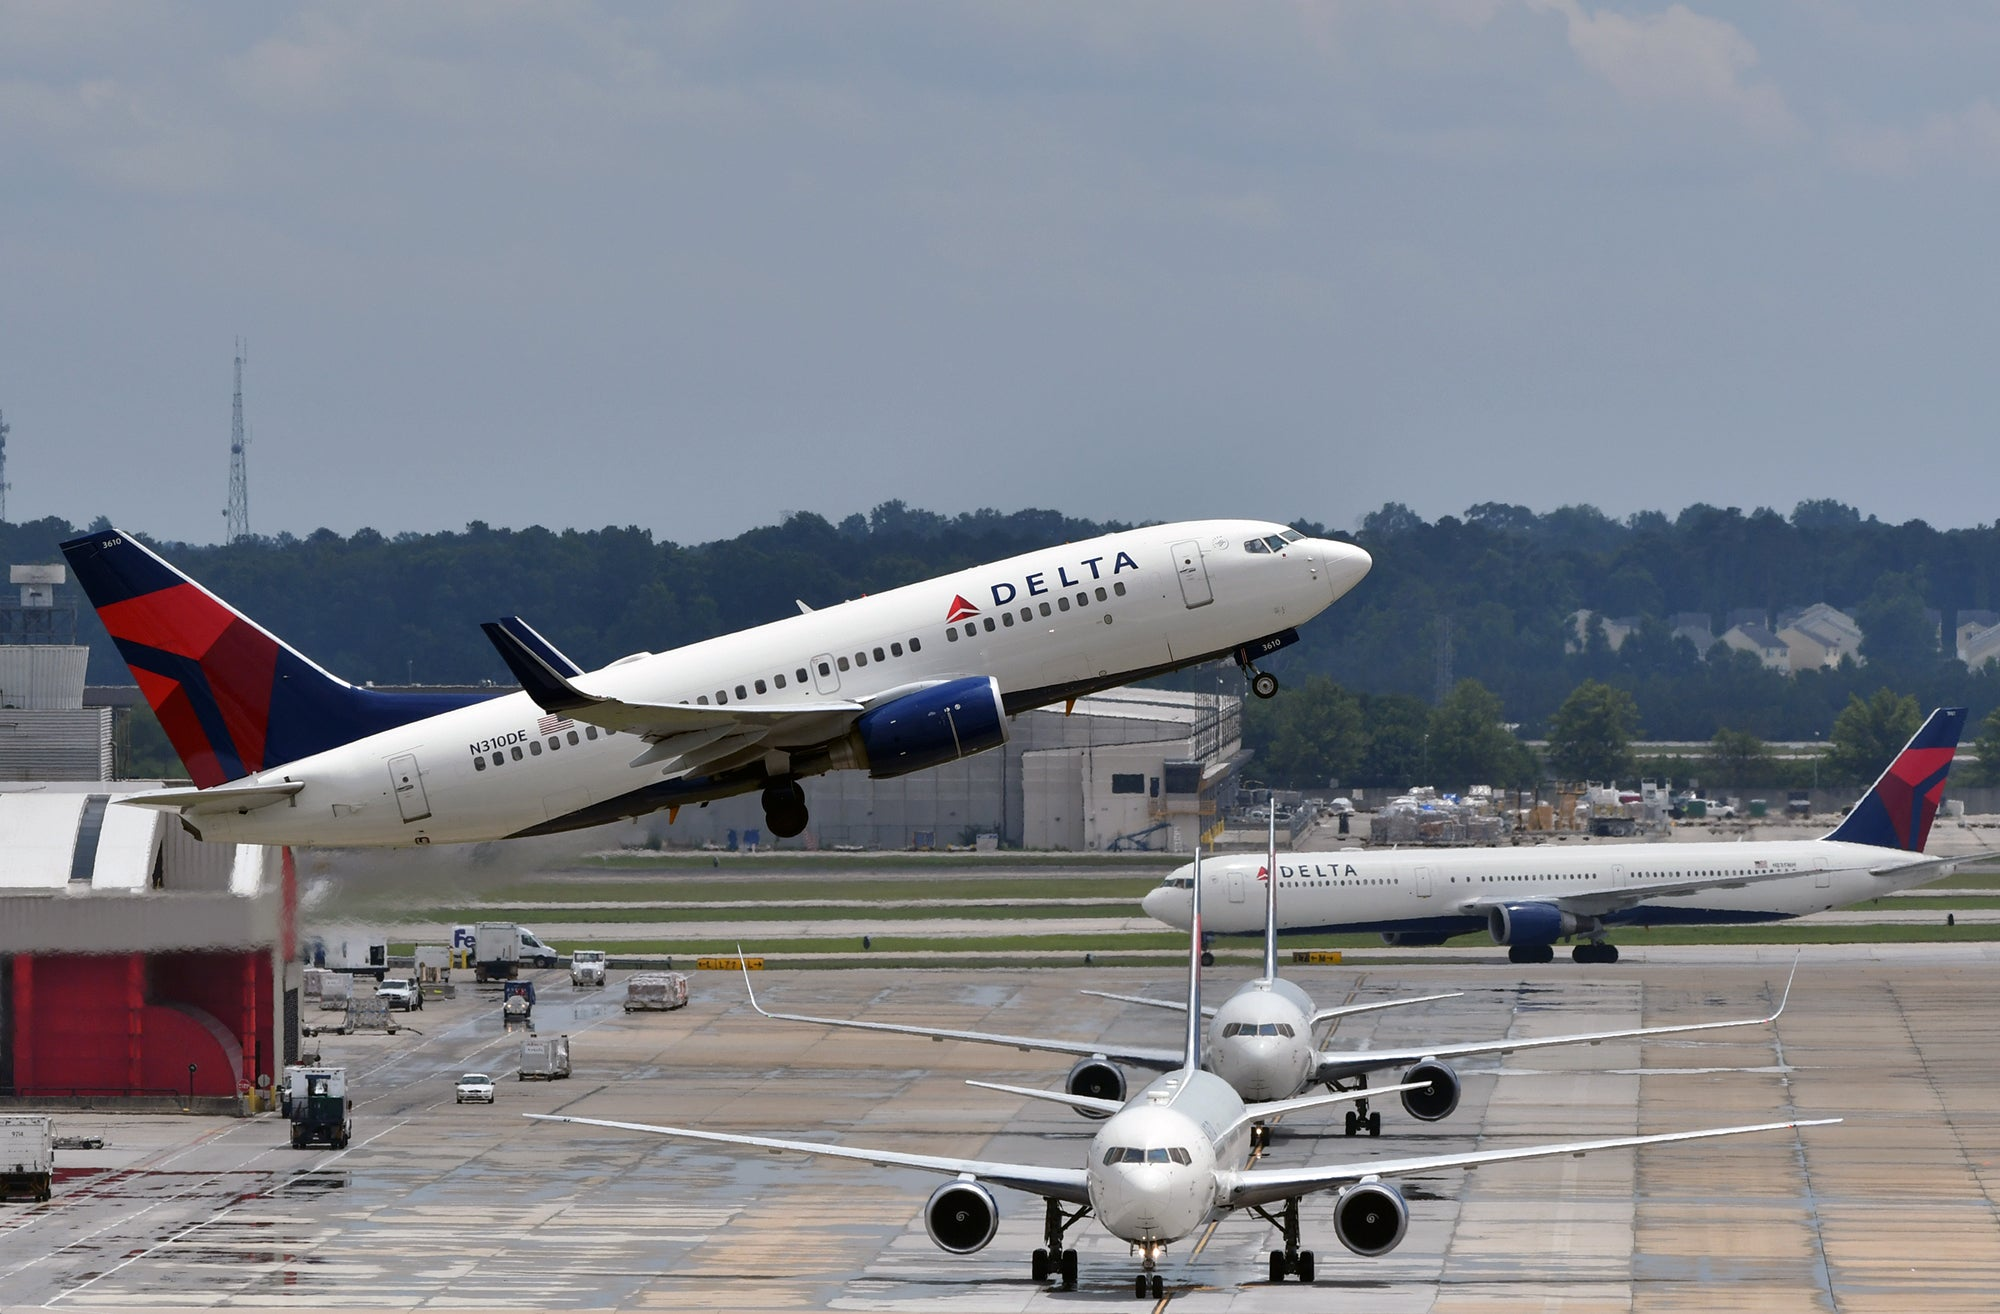 Delta Air Lines cover image